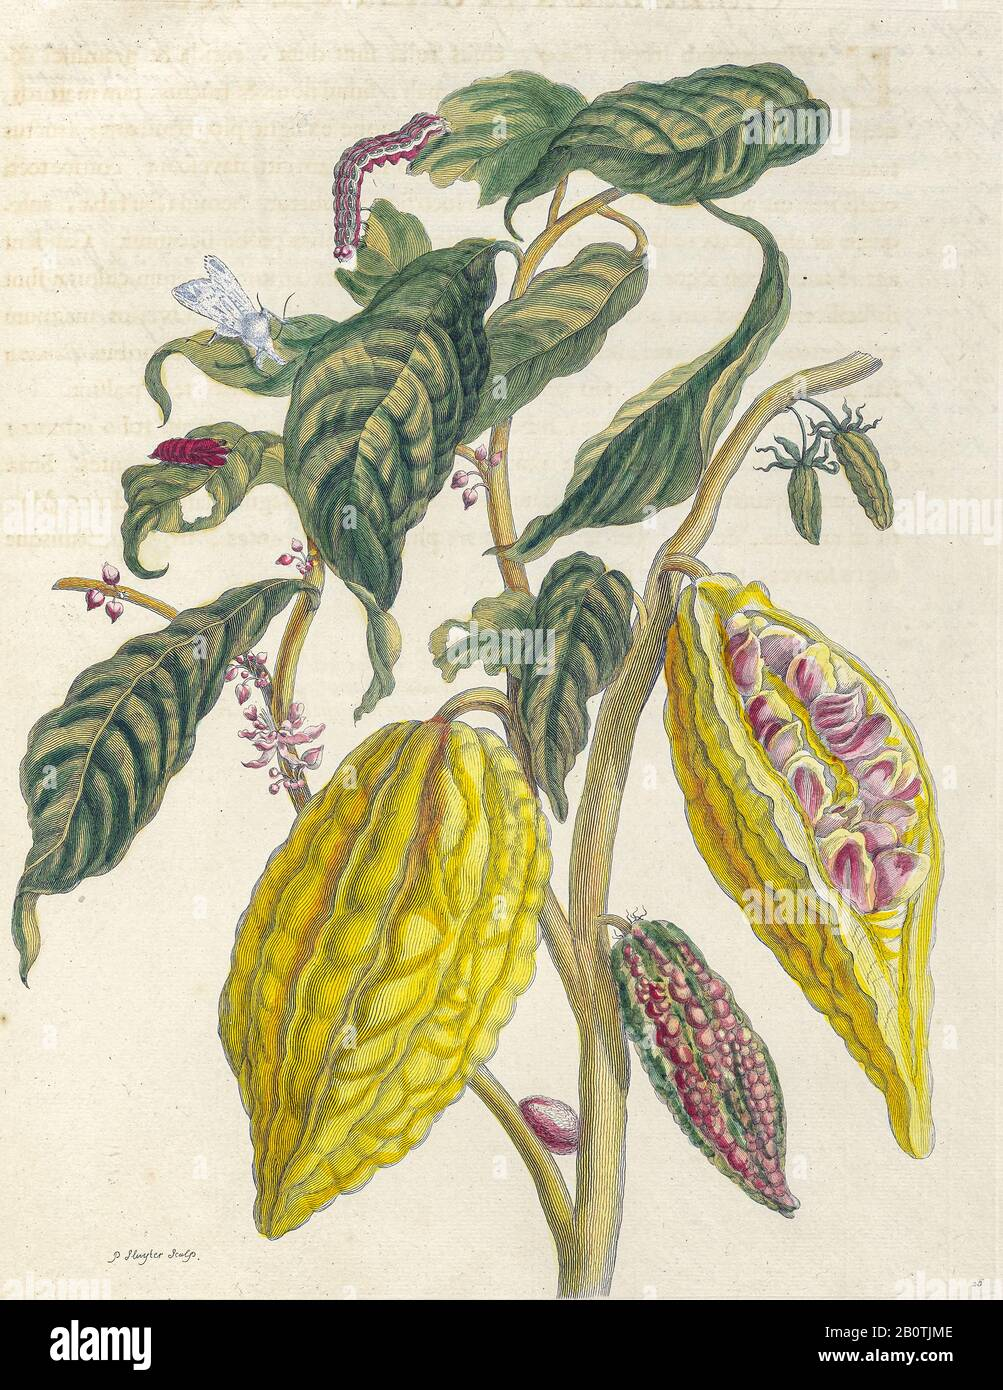 Plant and butterfly from Metamorphosis insectorum Surinamensium (Surinam insects) a hand coloured 18th century Book by Maria Sibylla Merian published in Amsterdam in 1719 Stock Photo